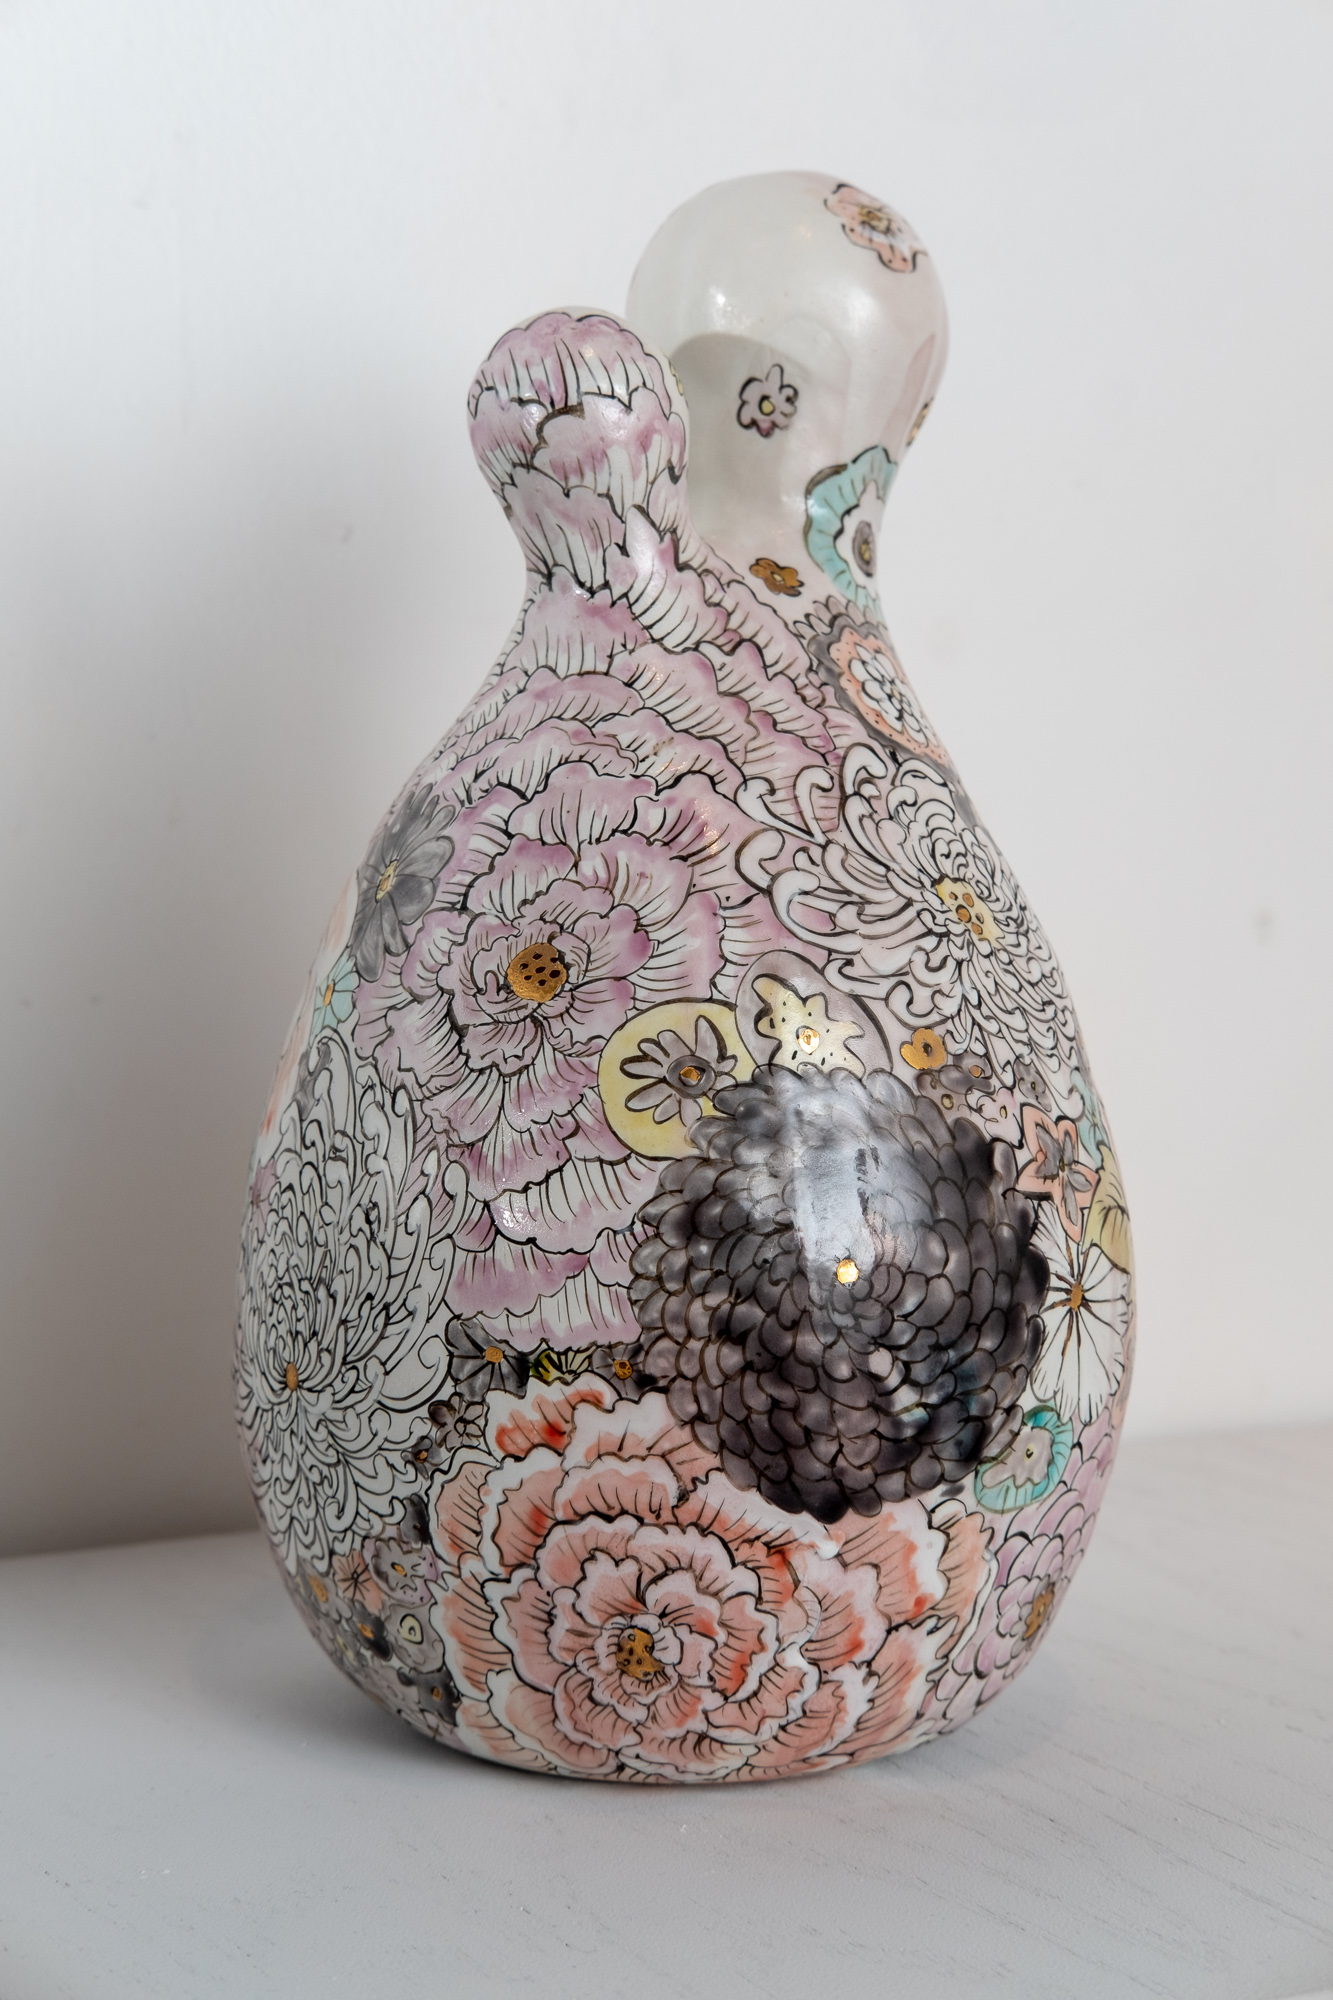 Hana-tsukushi (All the Flowers)   Handbuilt porcelain, glaze, overglaze drawing, raised Kutani enamels, gold  12 x 6 x 6 inches VZI 011G